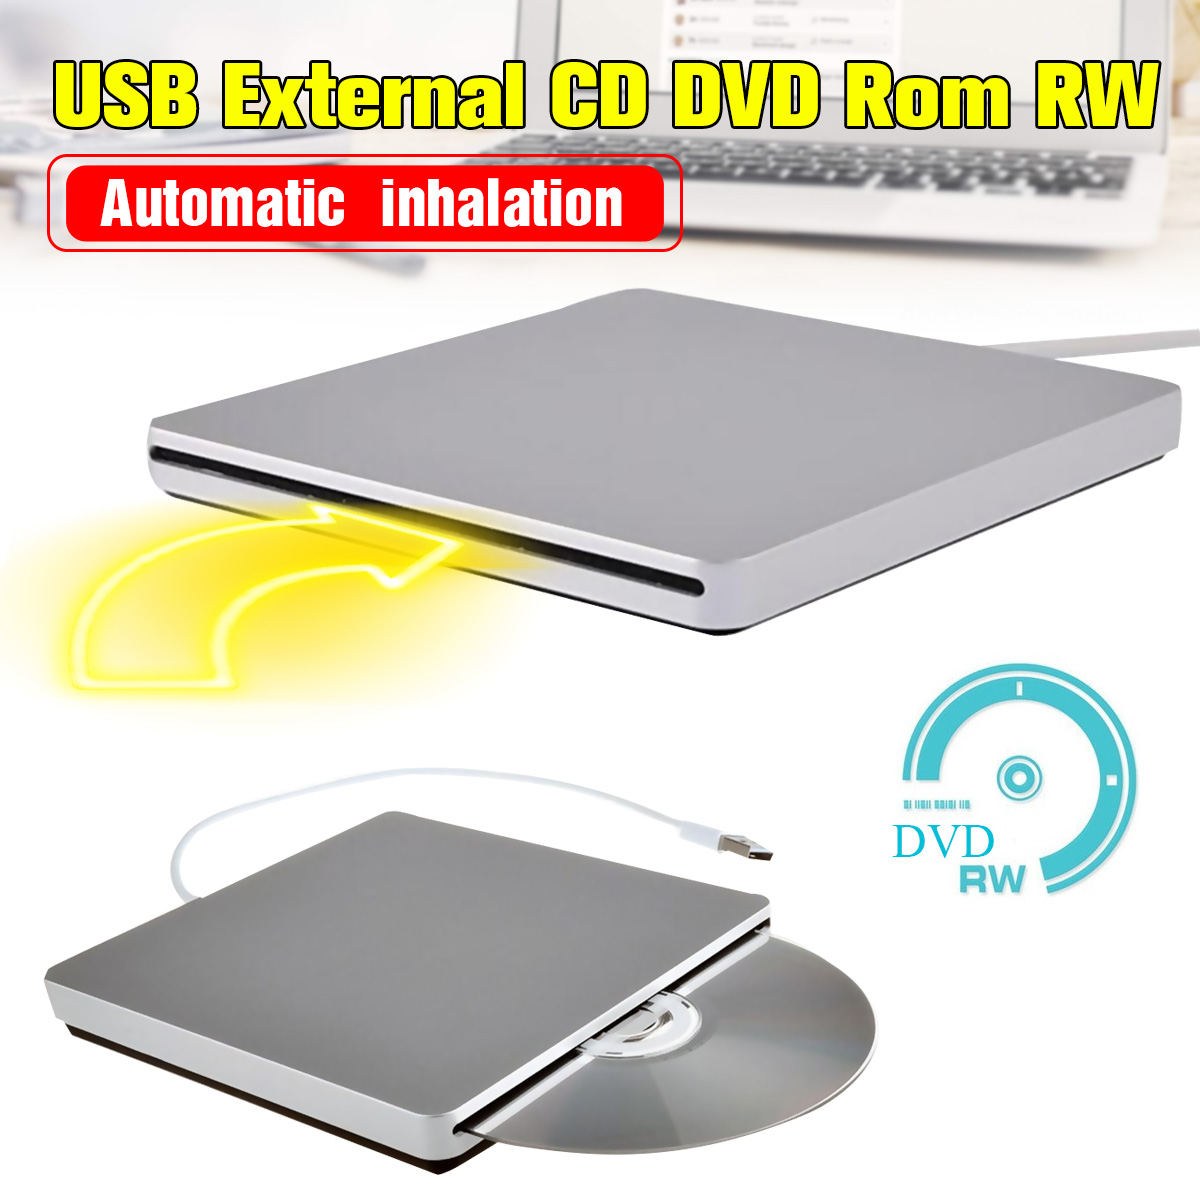 Ultra Slim portátil USB 2.0 Externo Slot-in CD DVD Rom RW Jogador Burner Drive para iMac/MacBook win8 ar para Mac Laptop Notebook